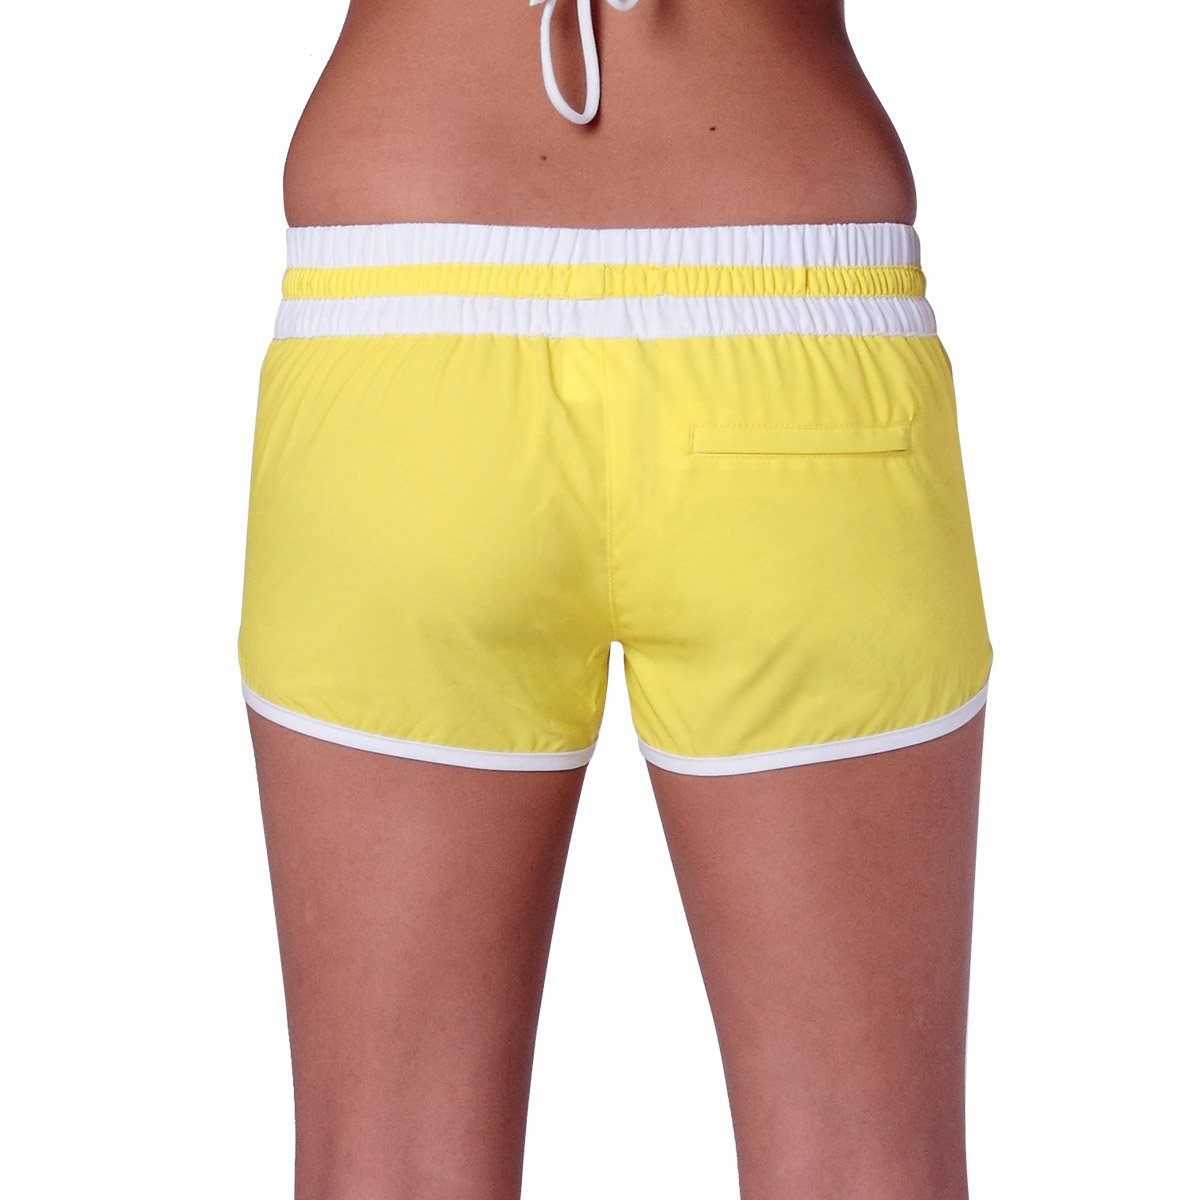 e7a1081c10 YELLOW CANDY WOMENS SWIM SHORTS. Sale!